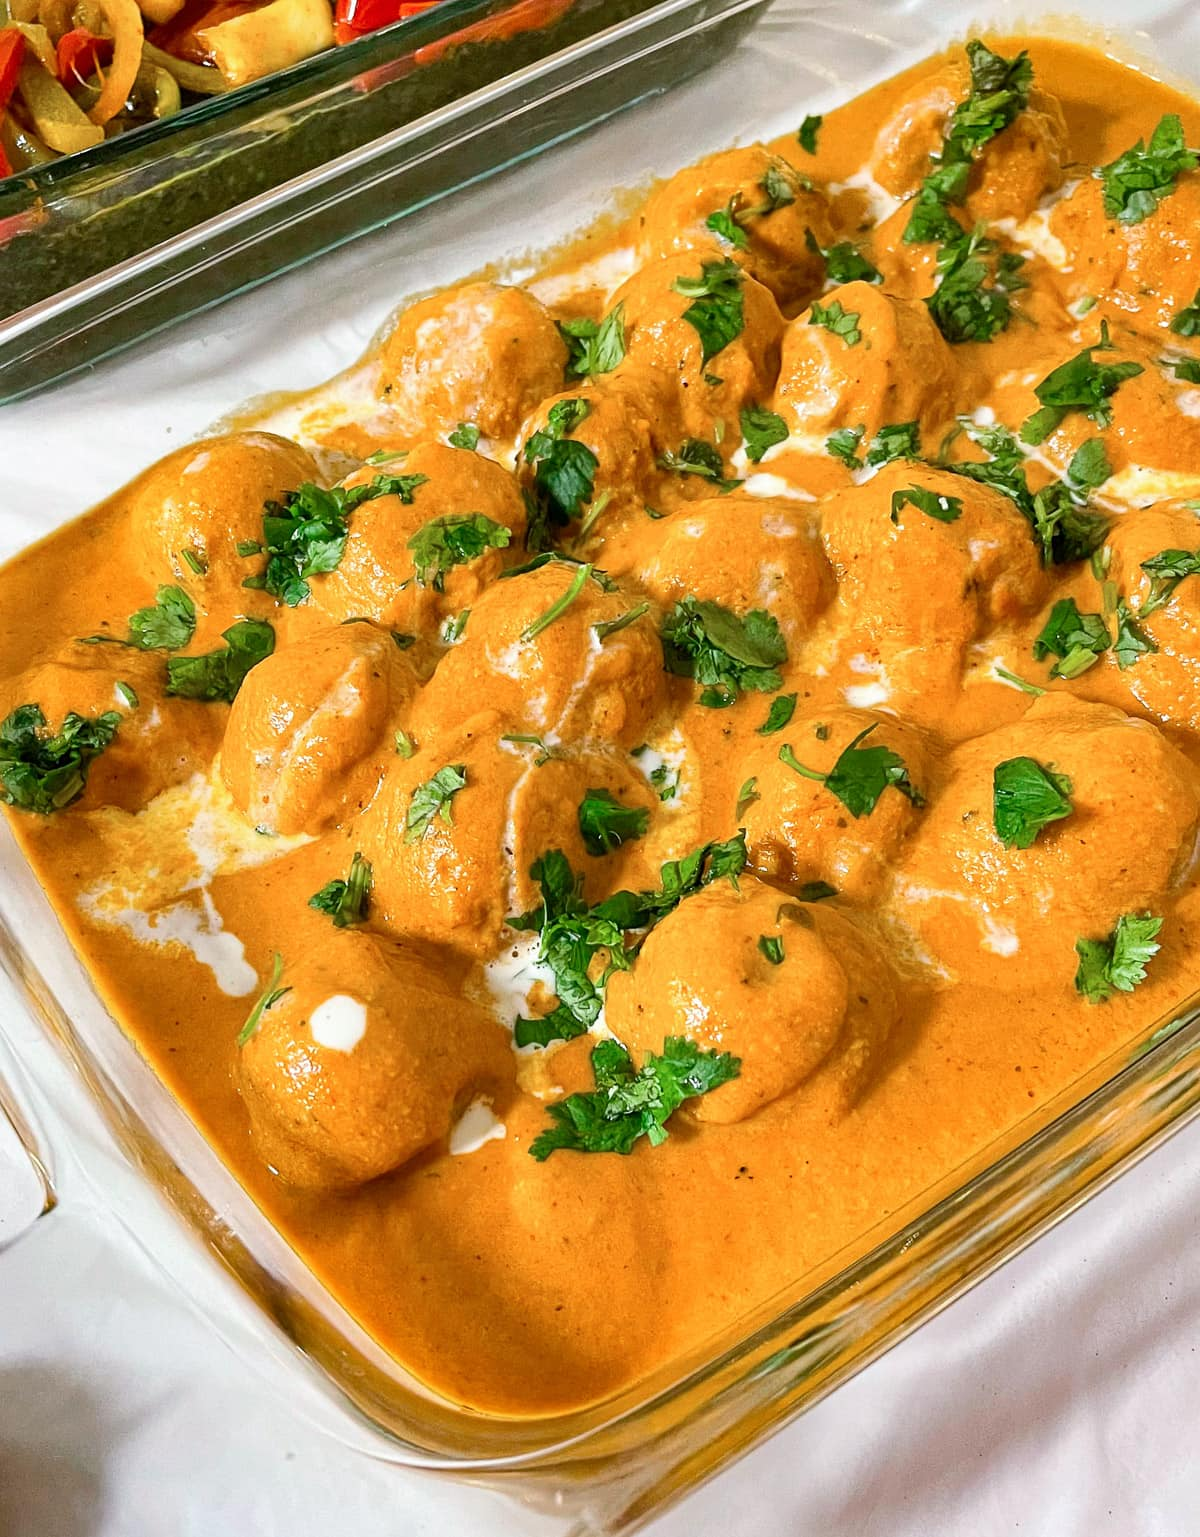 Large quantities of Malai Kofta in a catering tray